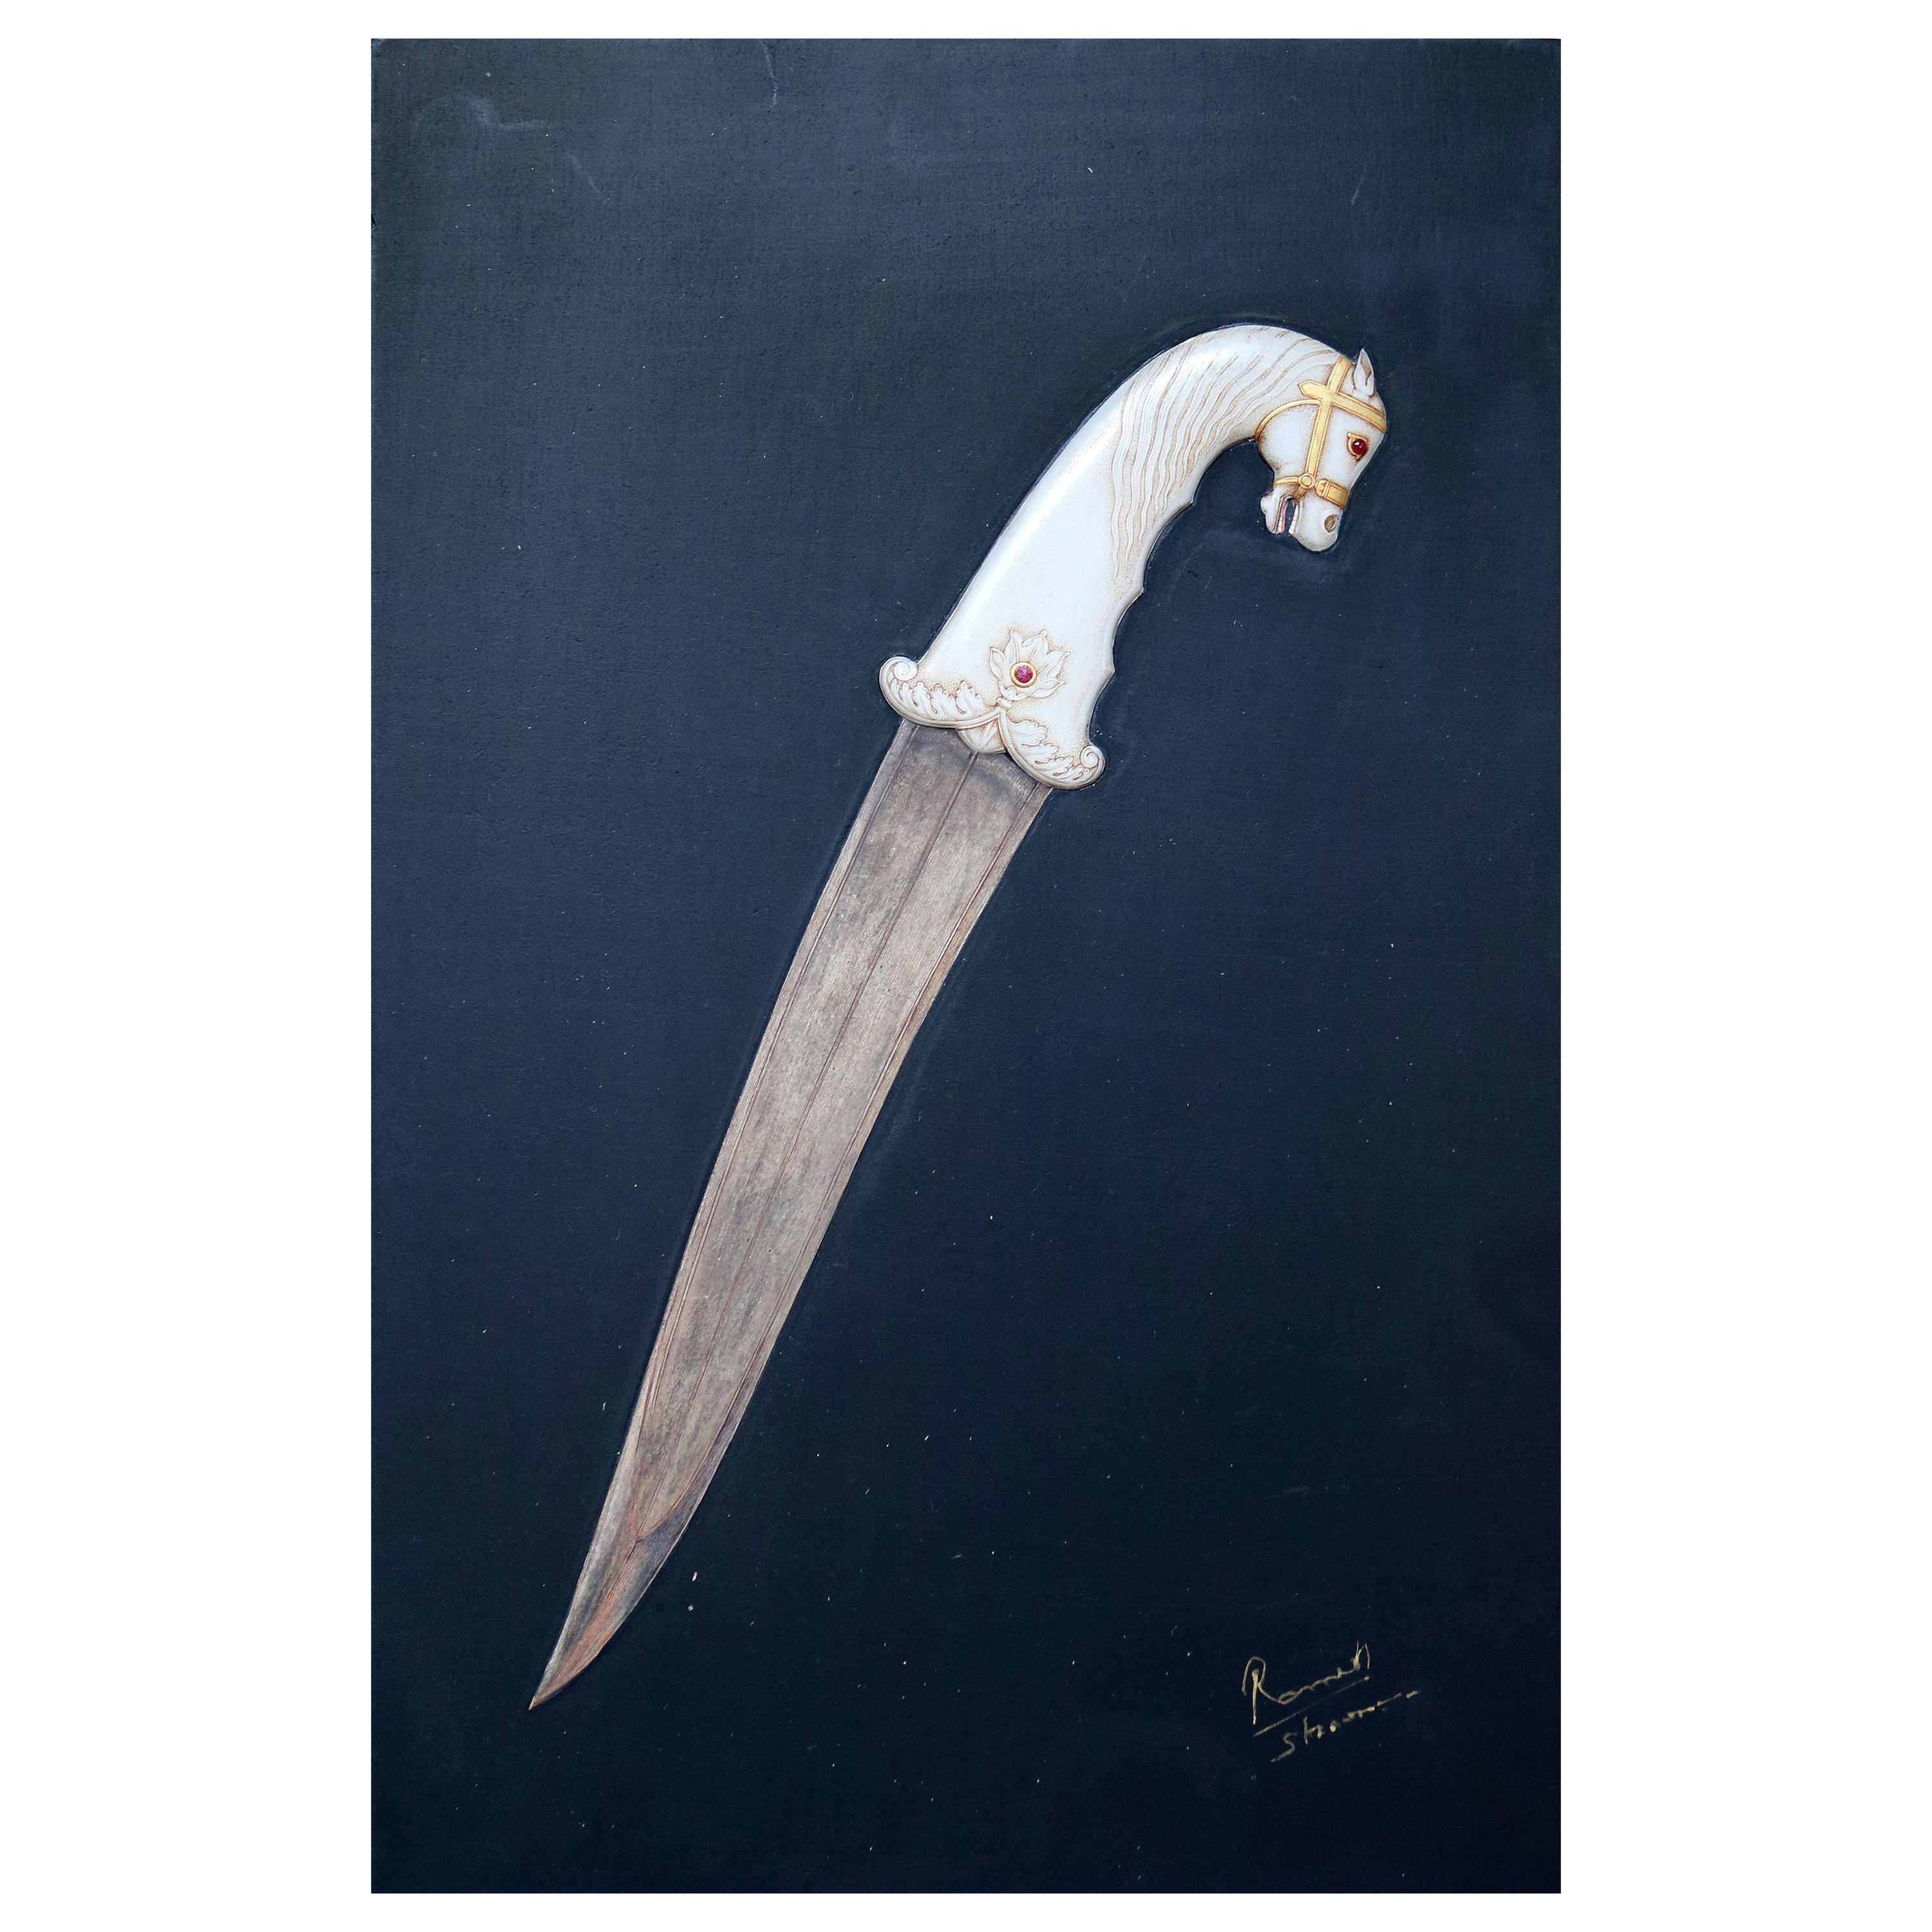 1985 Indian Artist Hyperrealist Relief Painting of a Dagger Using Gold Gilding